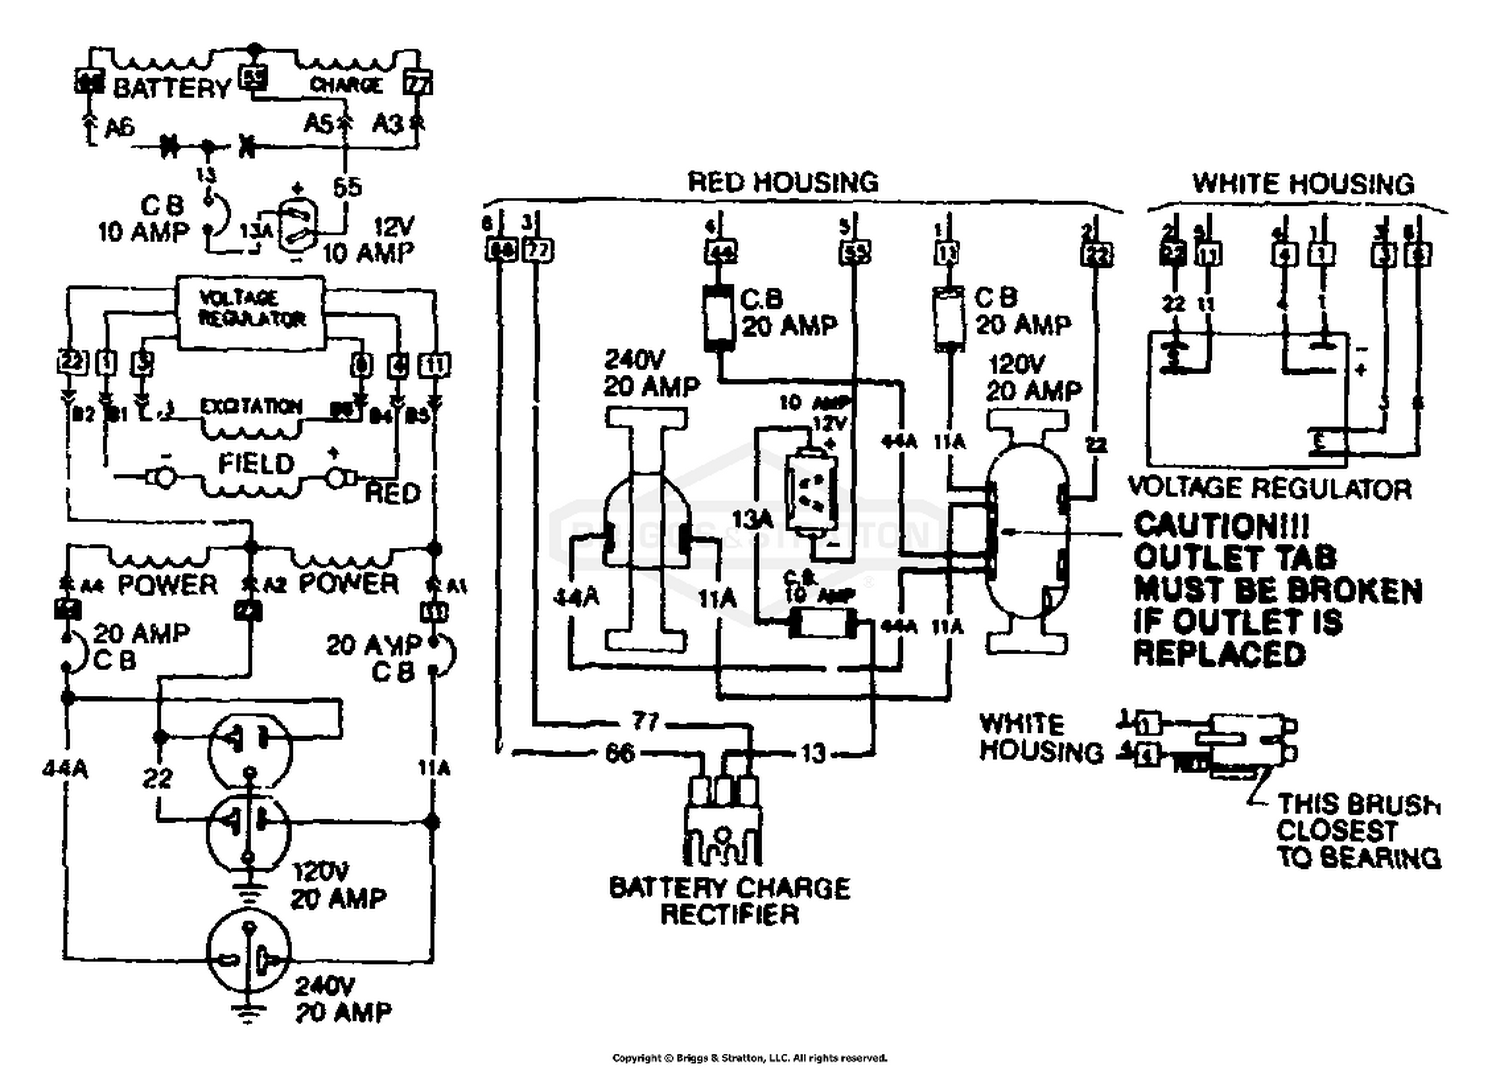 5000 watts amplifier schematic diagrams briggs  amp  stratton power products del 26072017021729 8920 0  briggs  amp  stratton power